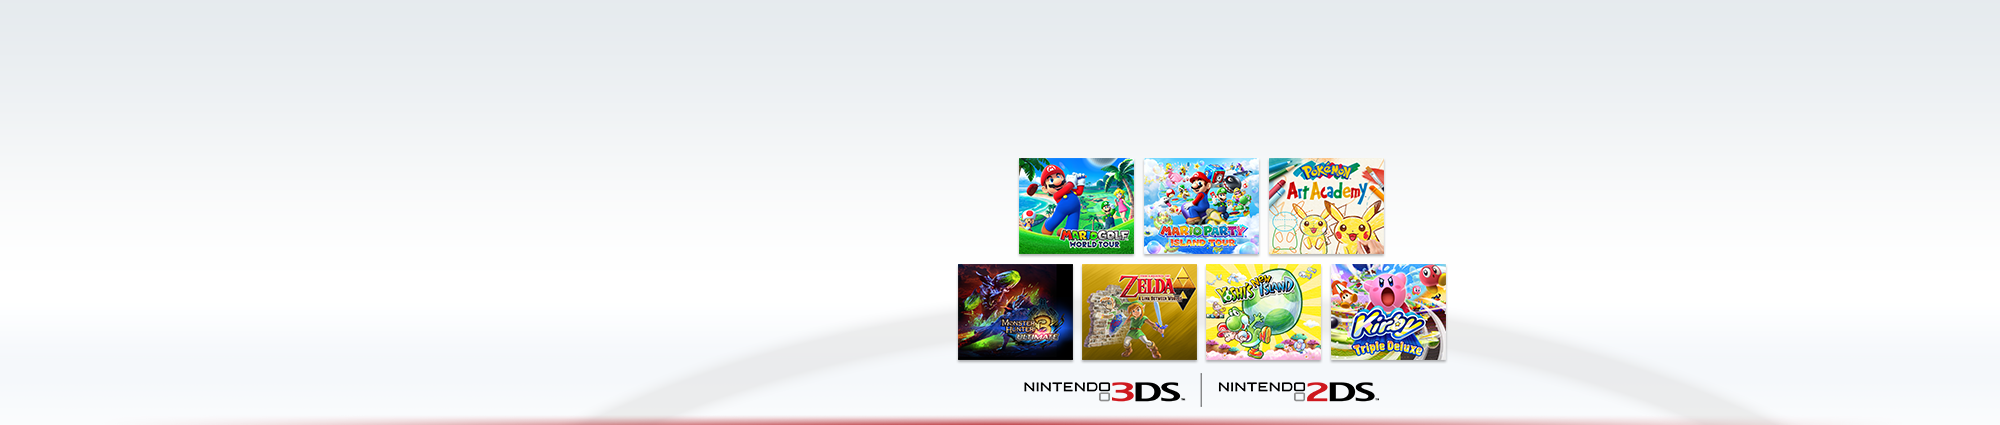 Nintendo 3DS Winter 2014 Bonus-Spiel-Aktion